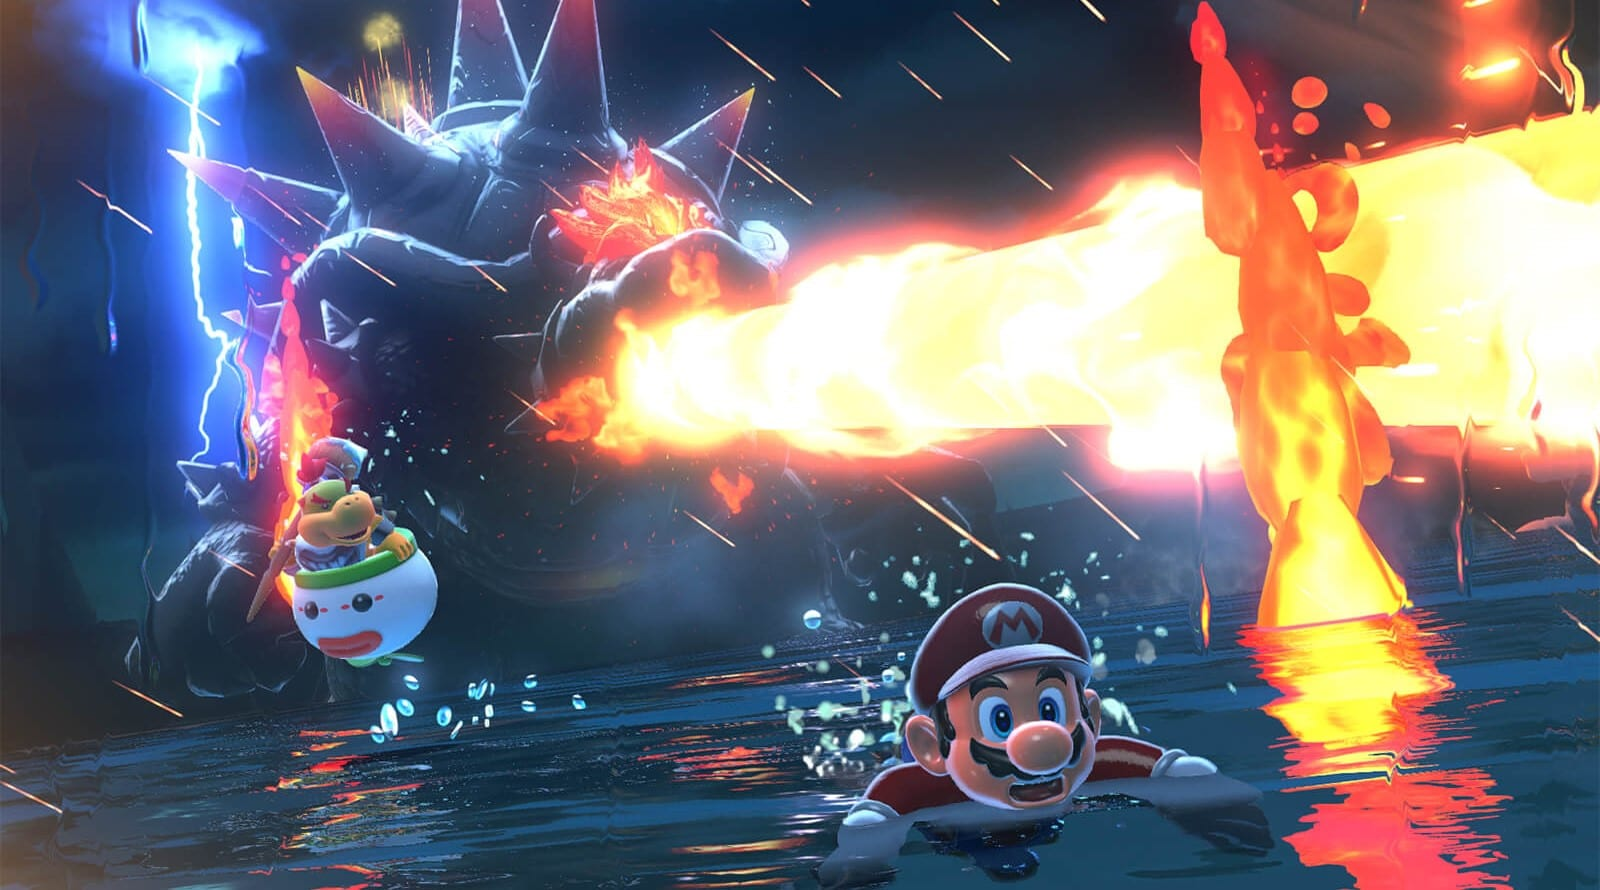 Bowser's Fury Feels Like the Future of Mario Platforming (Hands-On Preview)